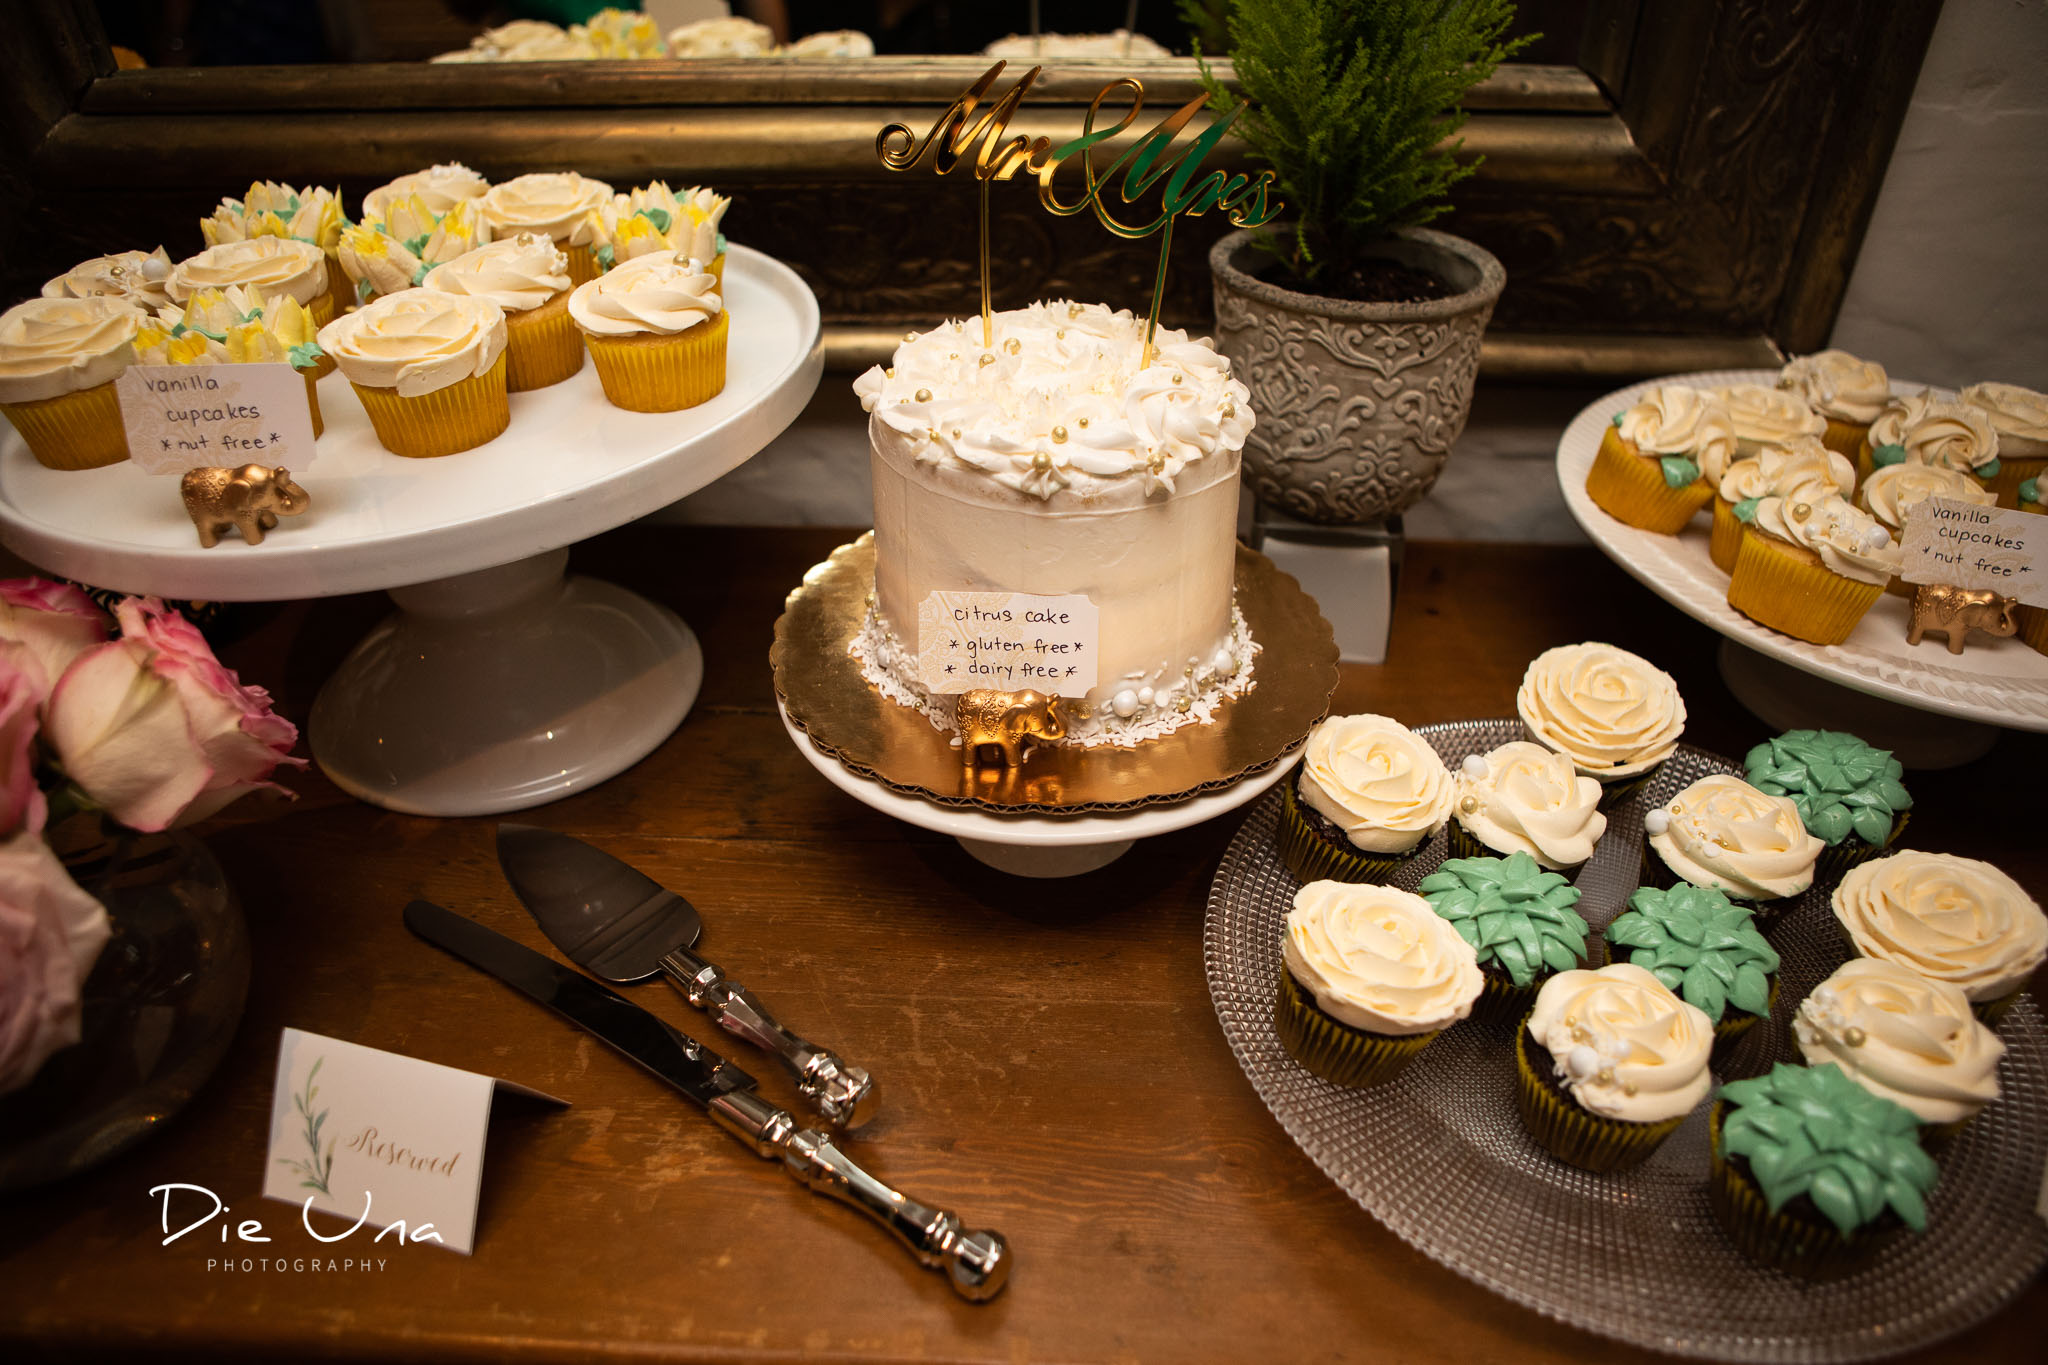 wedding cake and wedding cupcakes.jpg